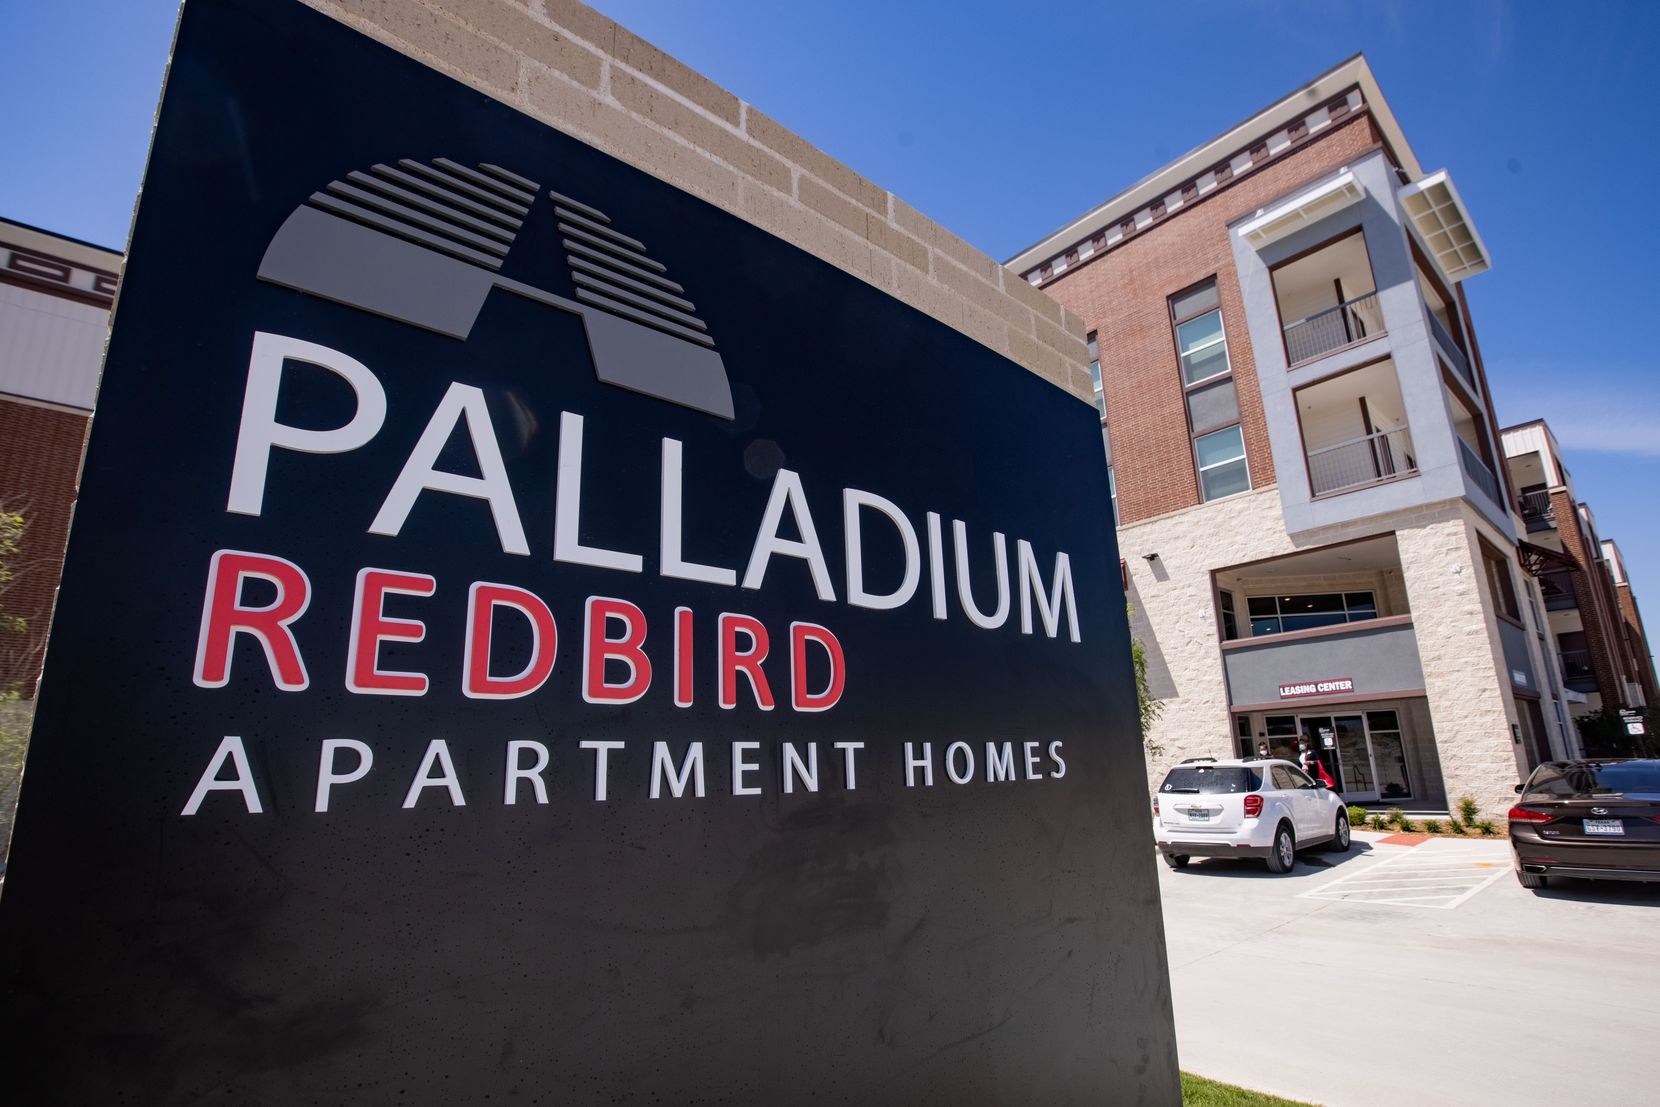 Palladium USA's 300-apartment project in Dallas' Red Bird area is part of the redevelopment of the old Red Bird Mall and is more than 90% leased. Rents start at less than $1,000 and go up to more than $1,800 a month.